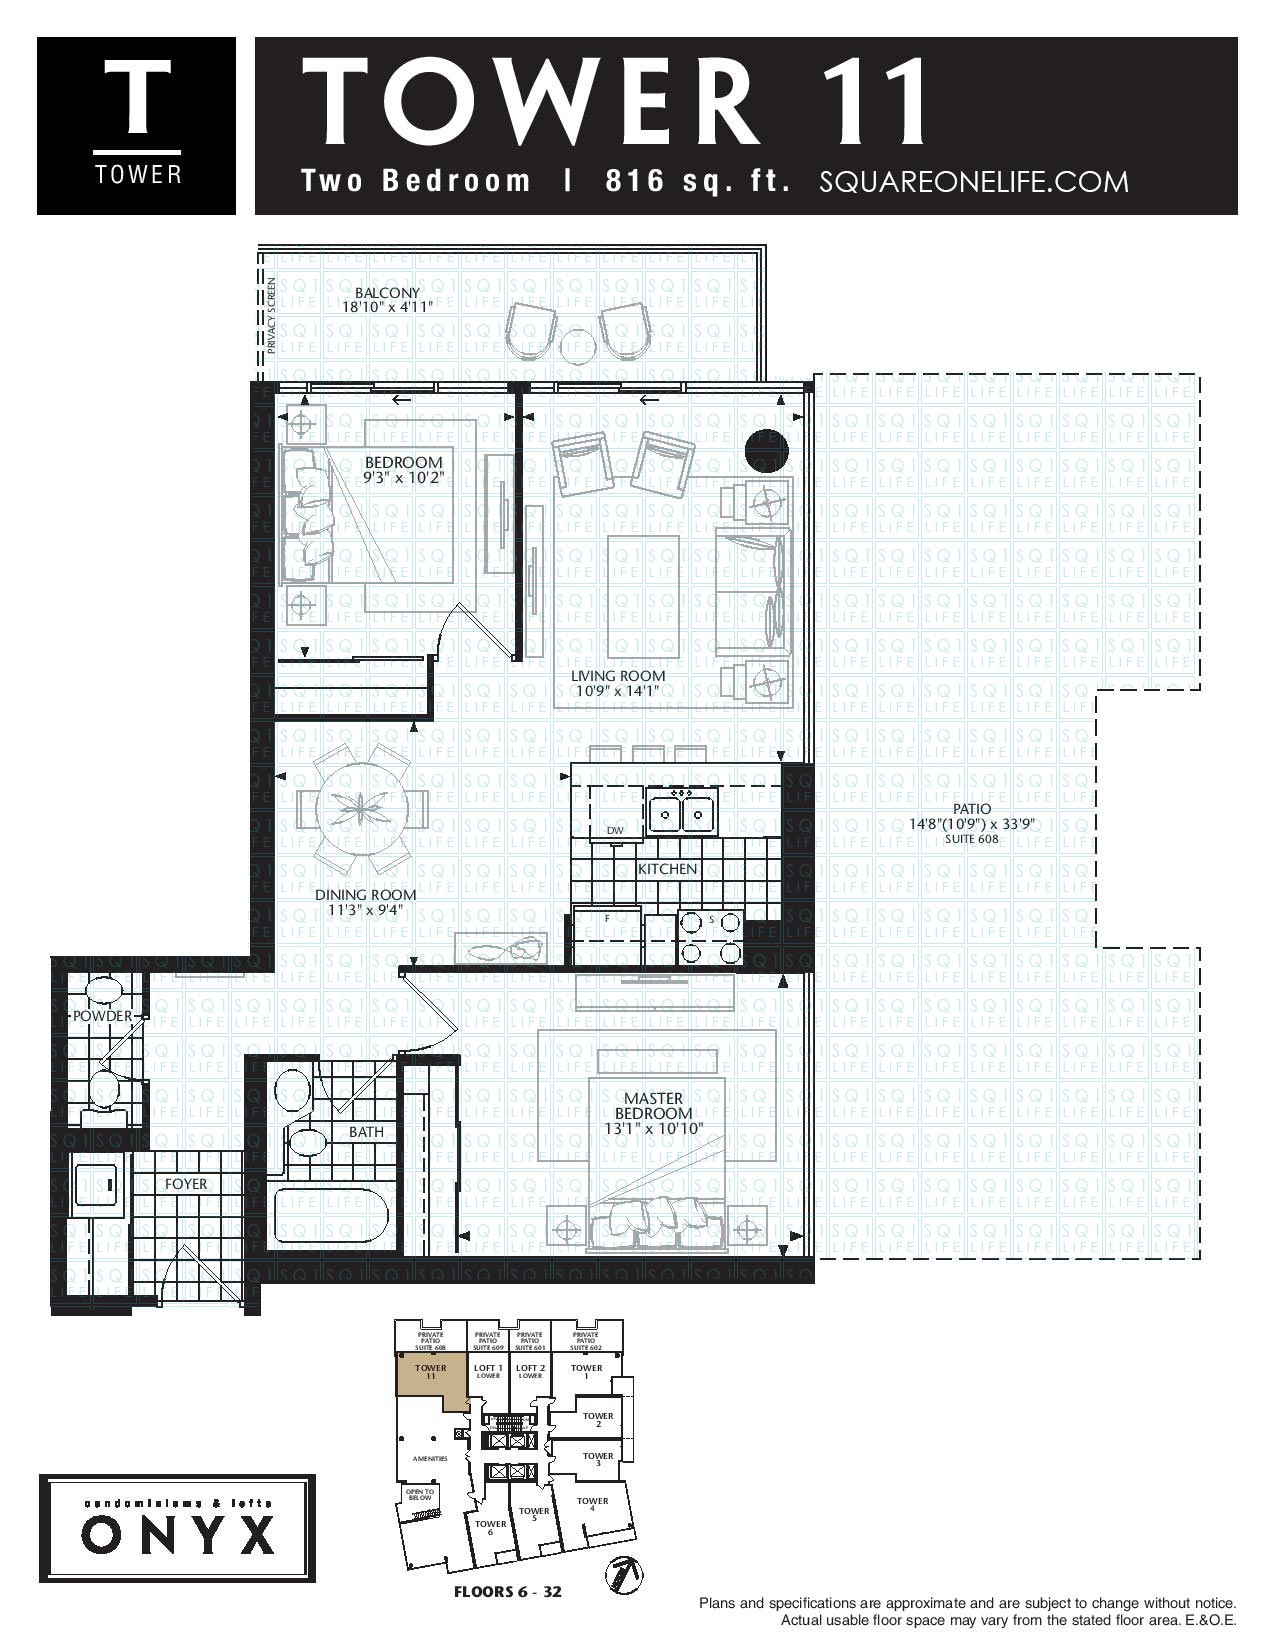 223-Webb-Dr-Onyx-Condo-Floorplan-Tower-11-2-Bed-2-Bath onyx condo Onyx Condo 223 Webb Dr Onyx Condo Floorplan Tower 11 2 Bed 2 Bath